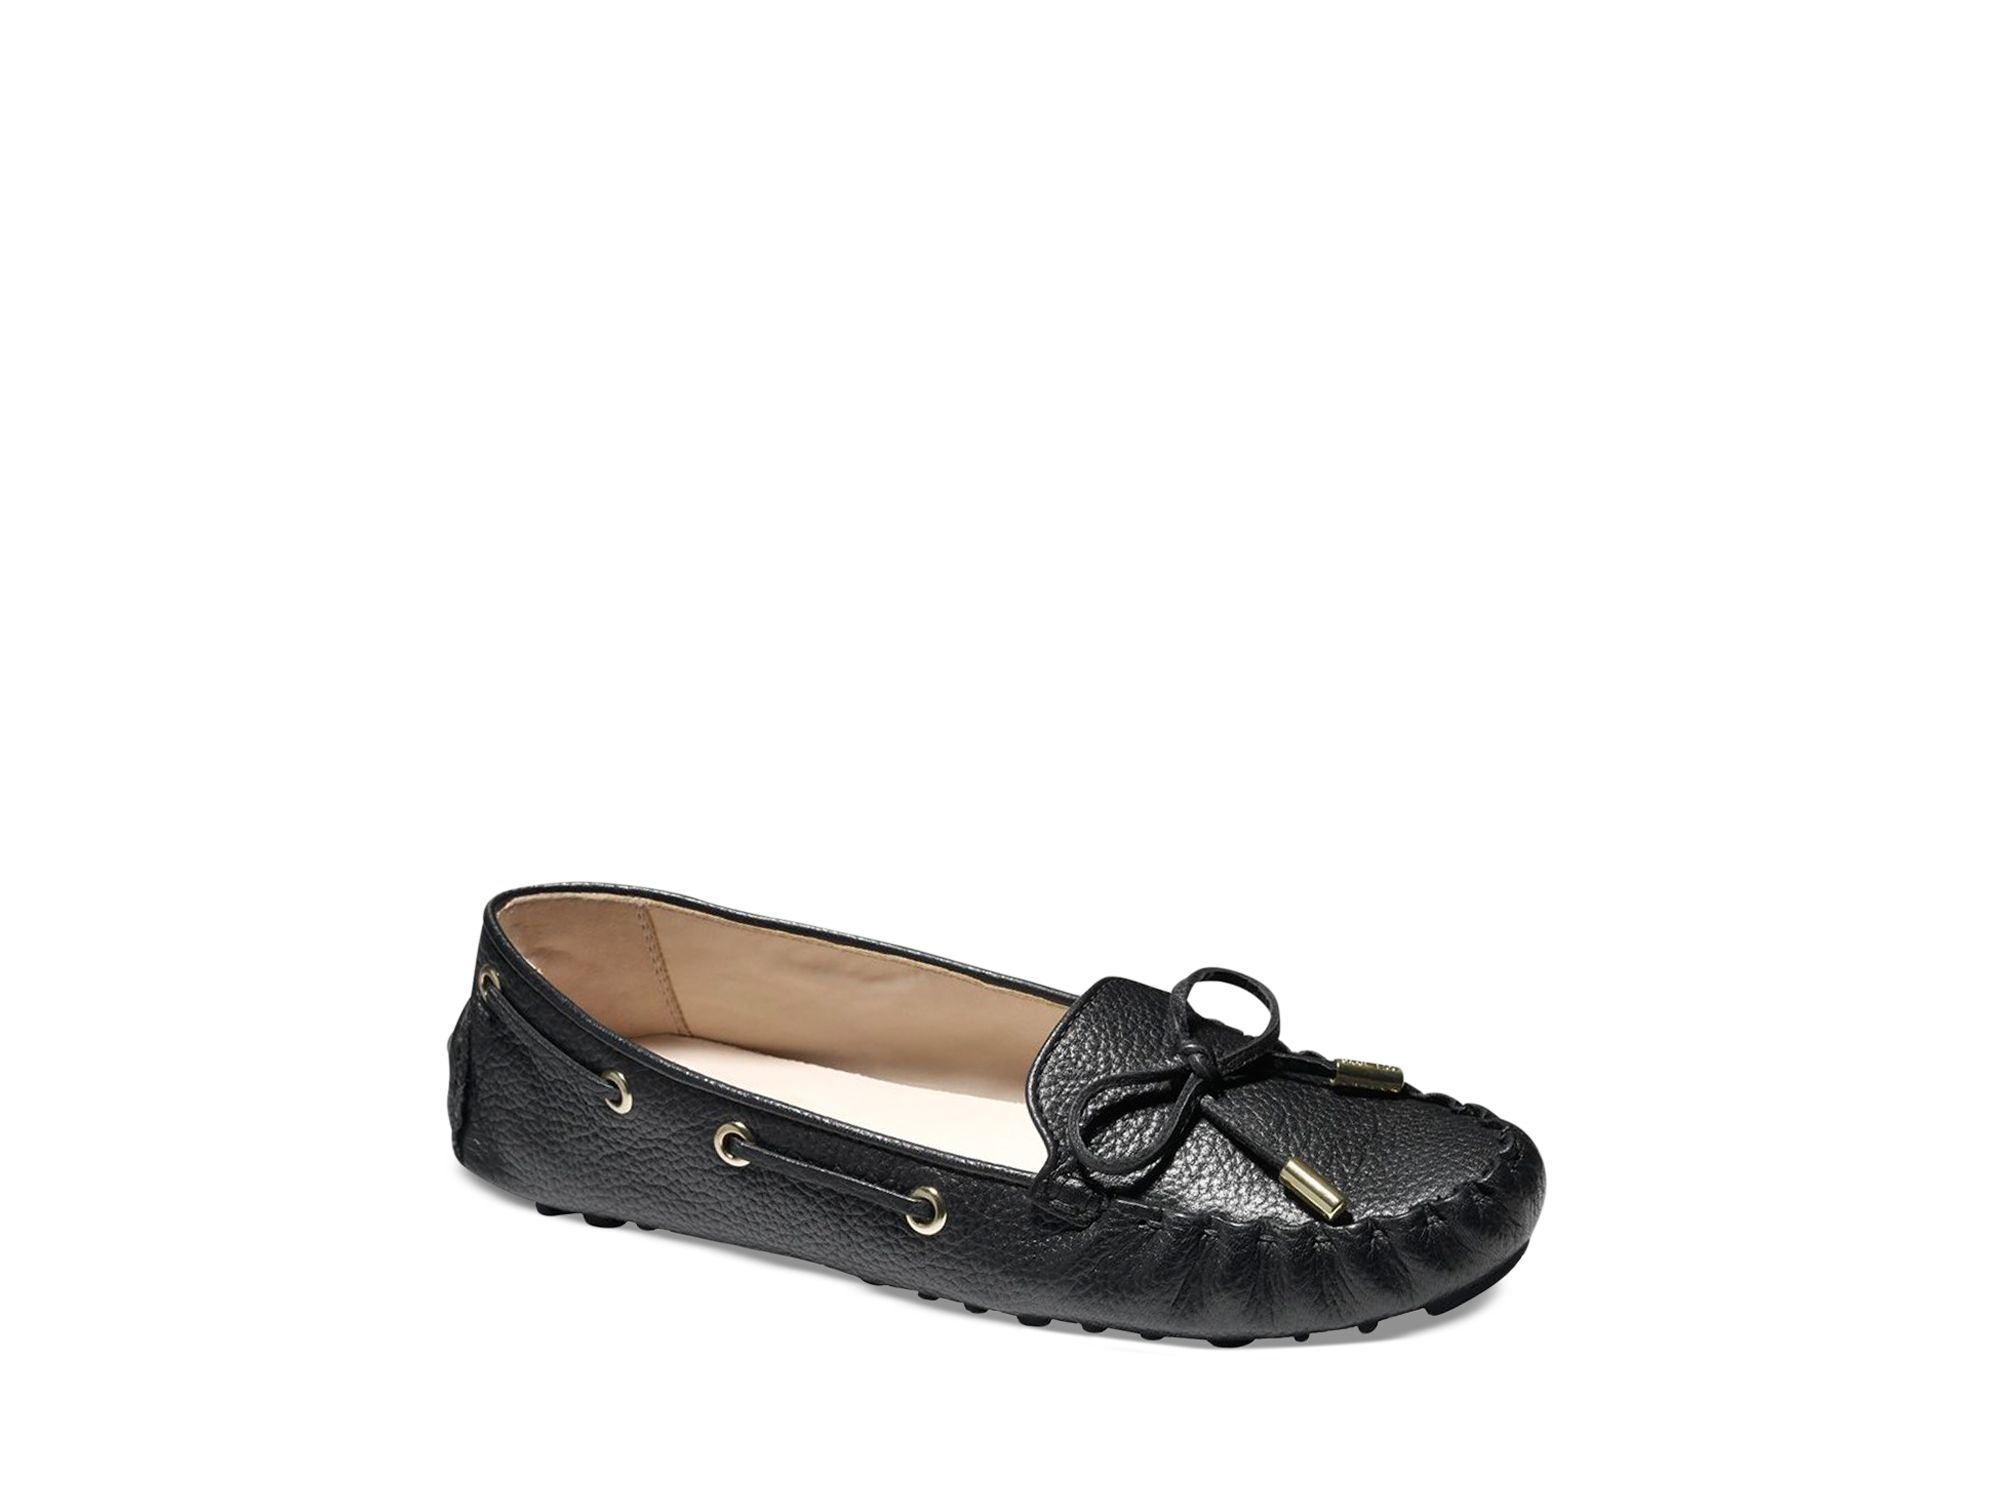 8d87574501b Lyst - Cole Haan Driving Moccasin Flats - Cary in Black